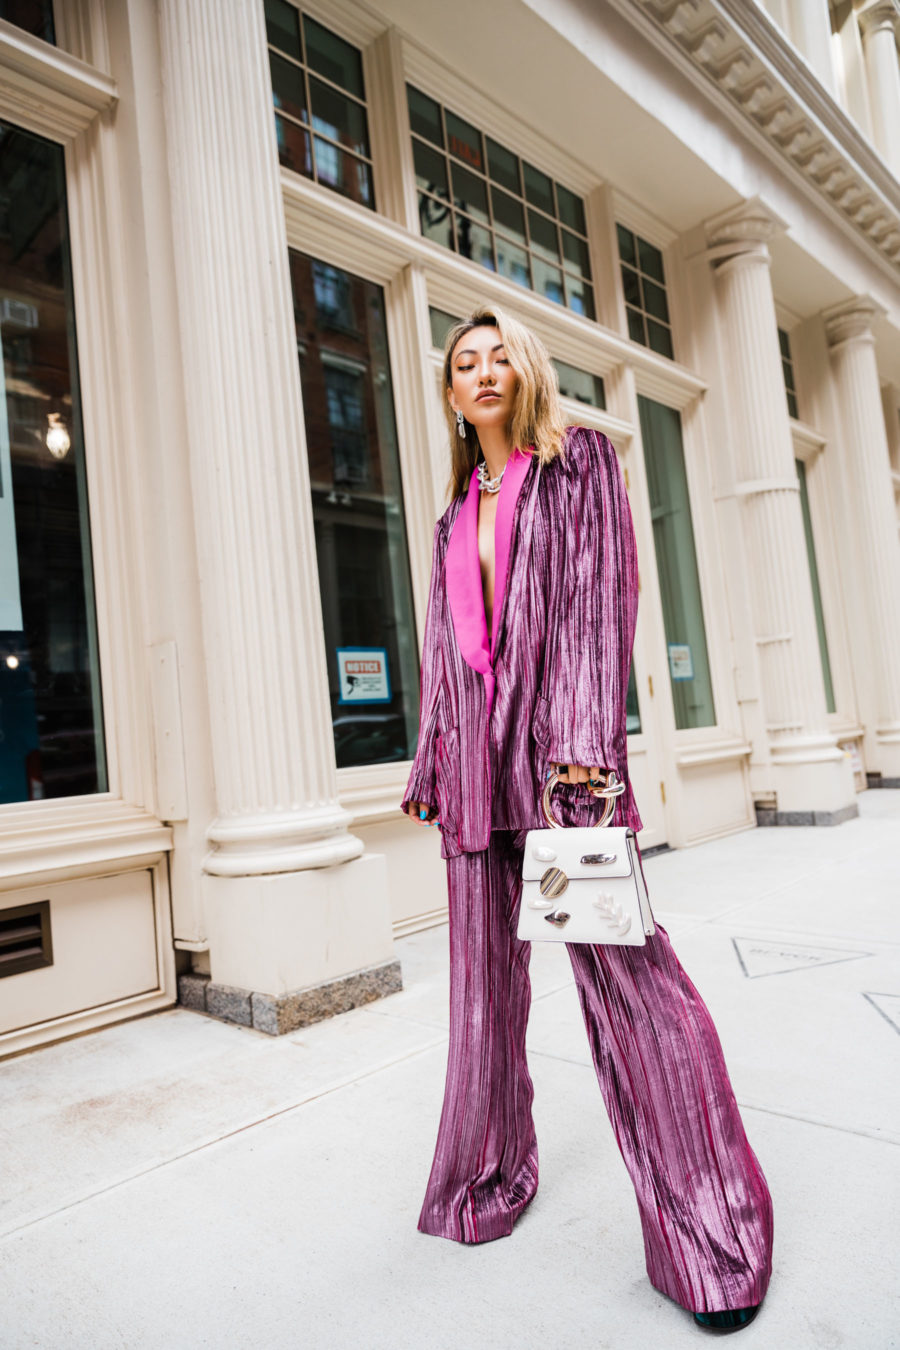 spring transitional outfits with an oversized blazer and wide leg trousers // Jessica Wang - Notjessfashion.com